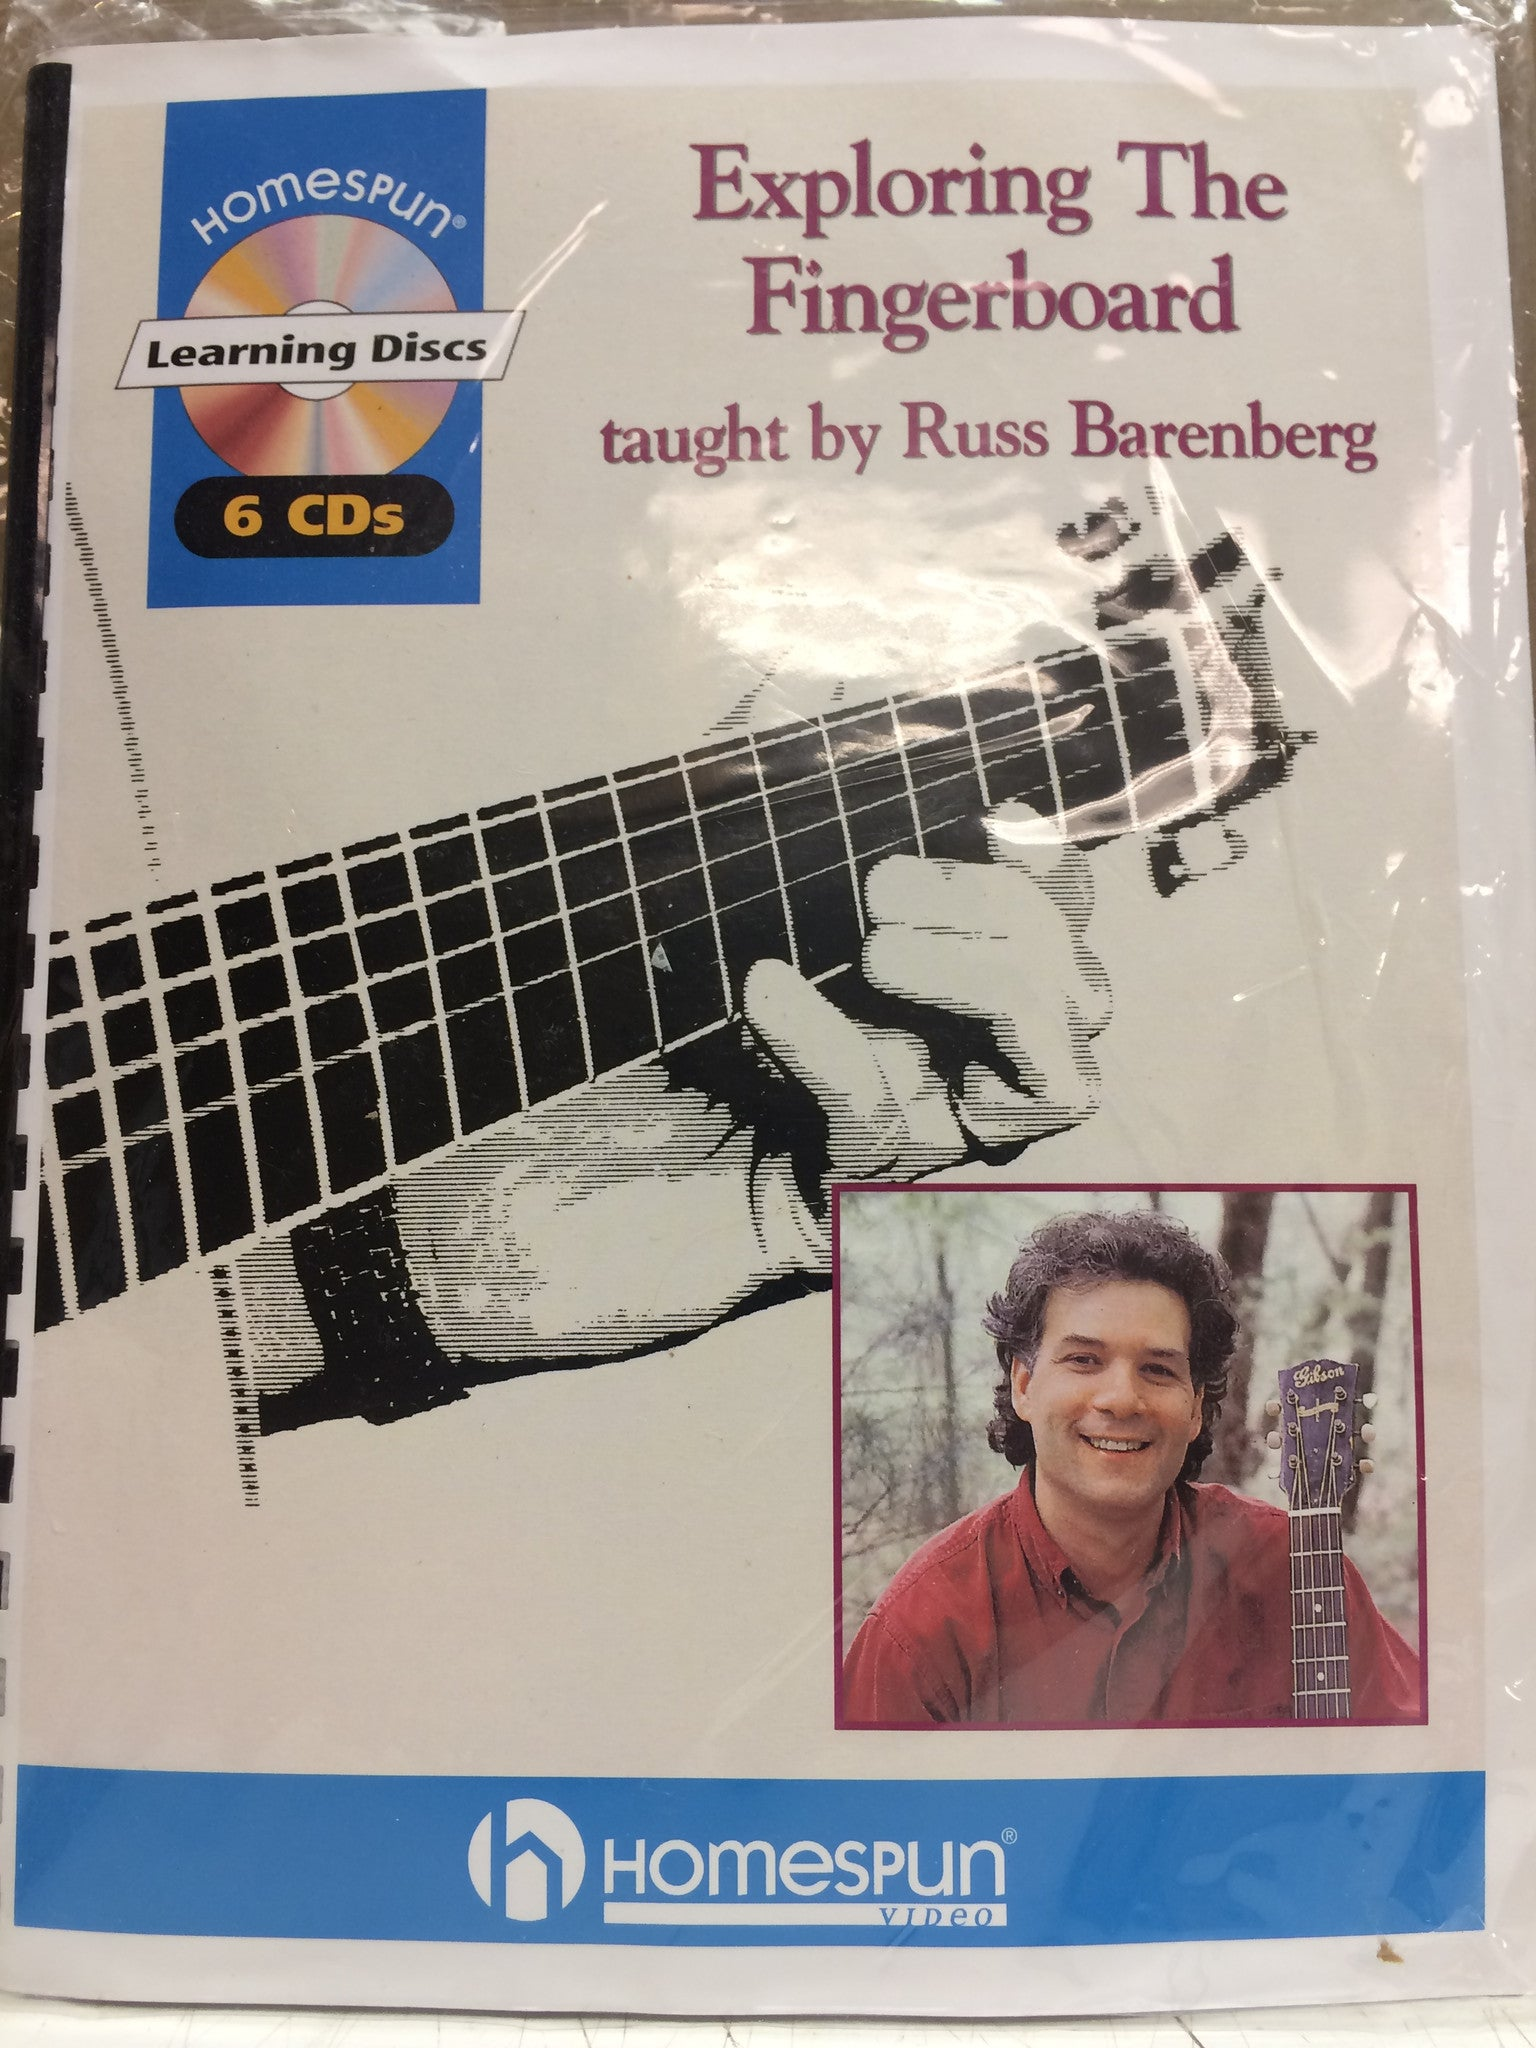 Exploring the Fingerboard - Russ Barenberg from Compass Records